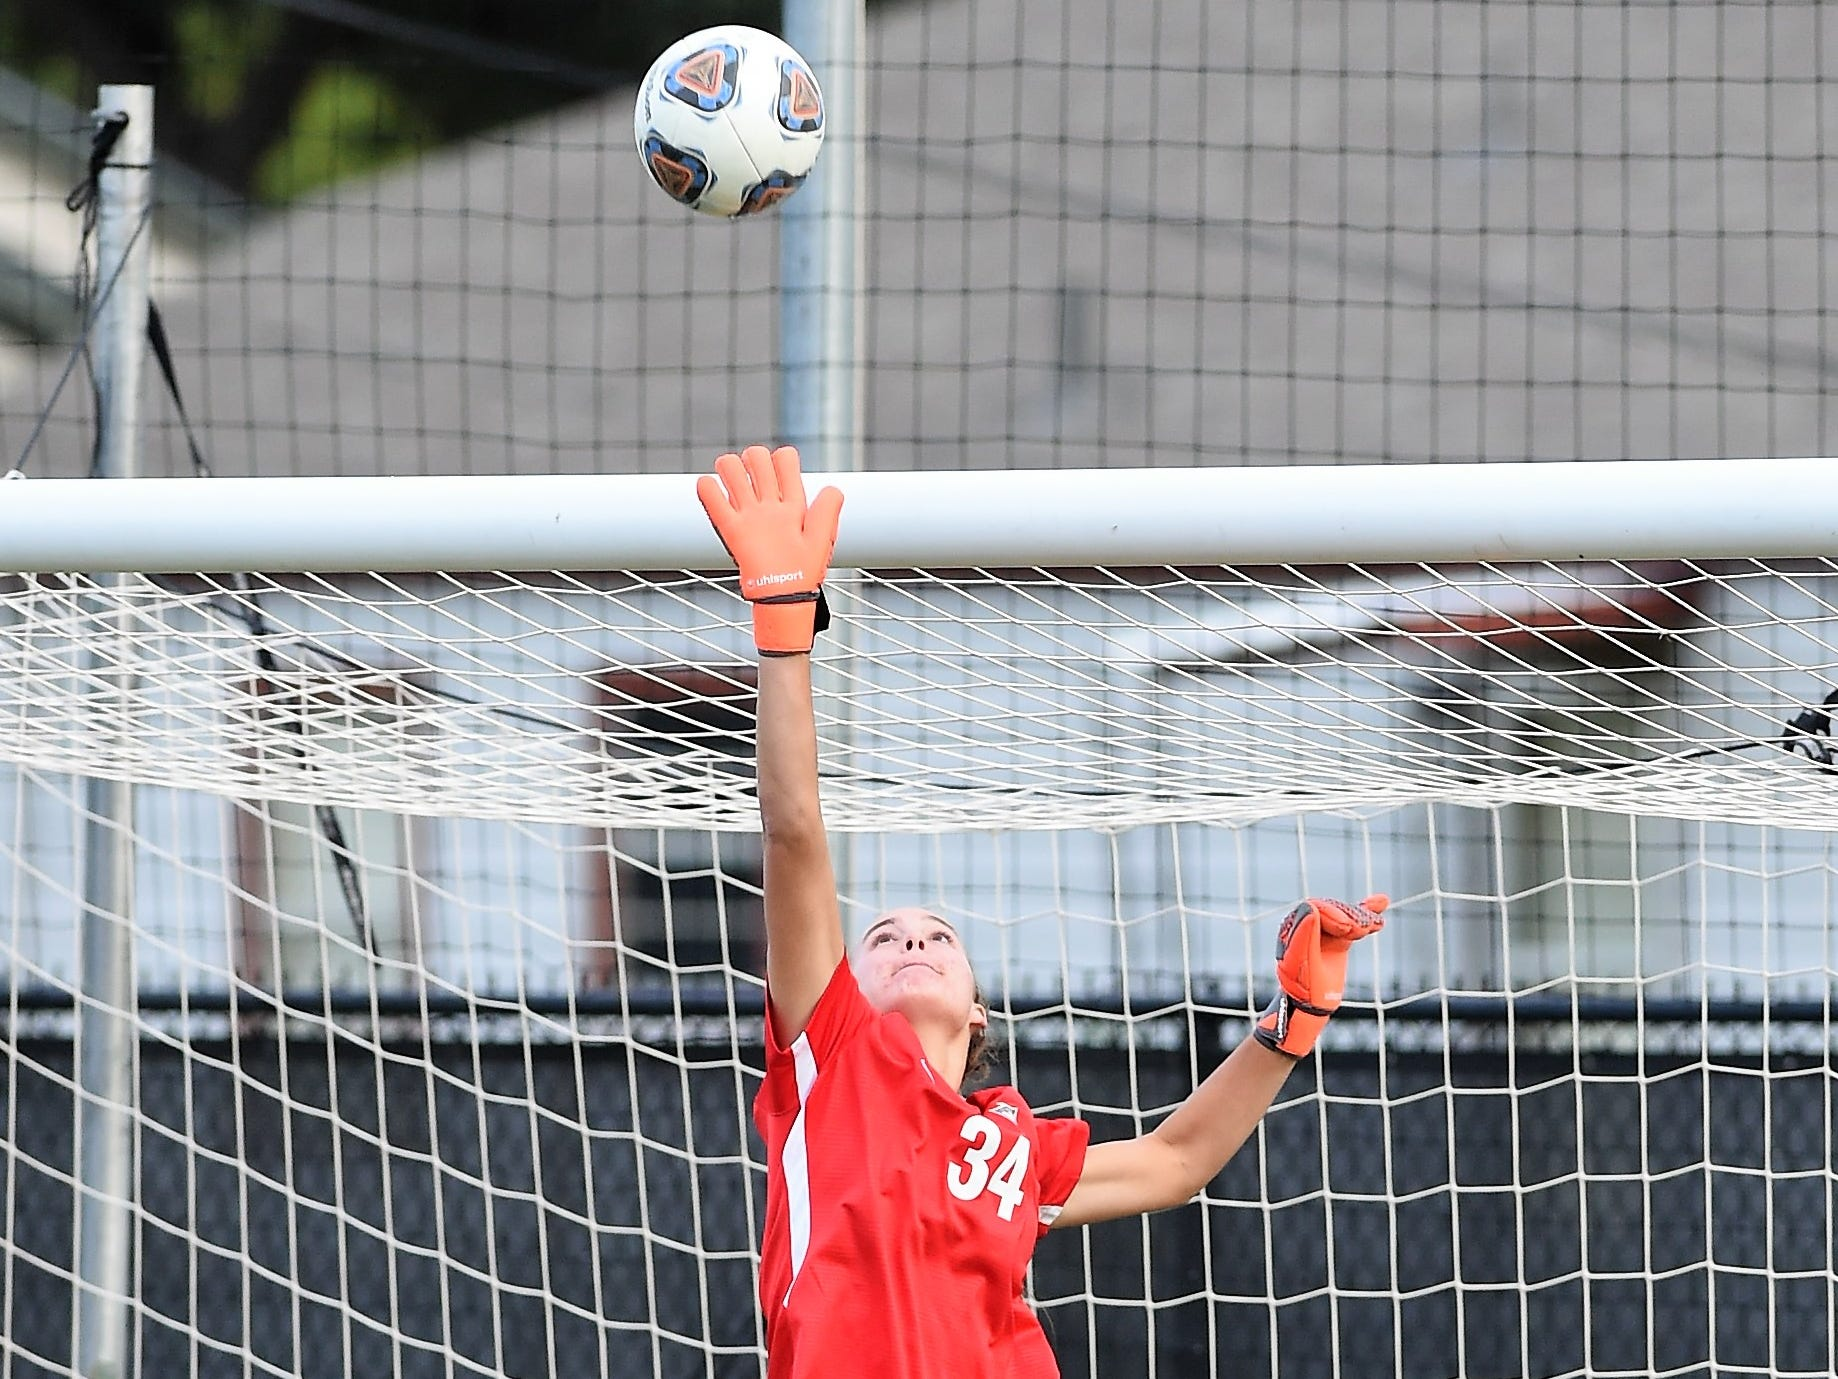 Hardin-Simmons keeper Caitlin Christiansen (34) jumps to knock the ball over the crossbar against Howard Payne at the HSU Soccer Complex on Thursday, Oct. 11, 2018. The Cowgirls won 4-1.